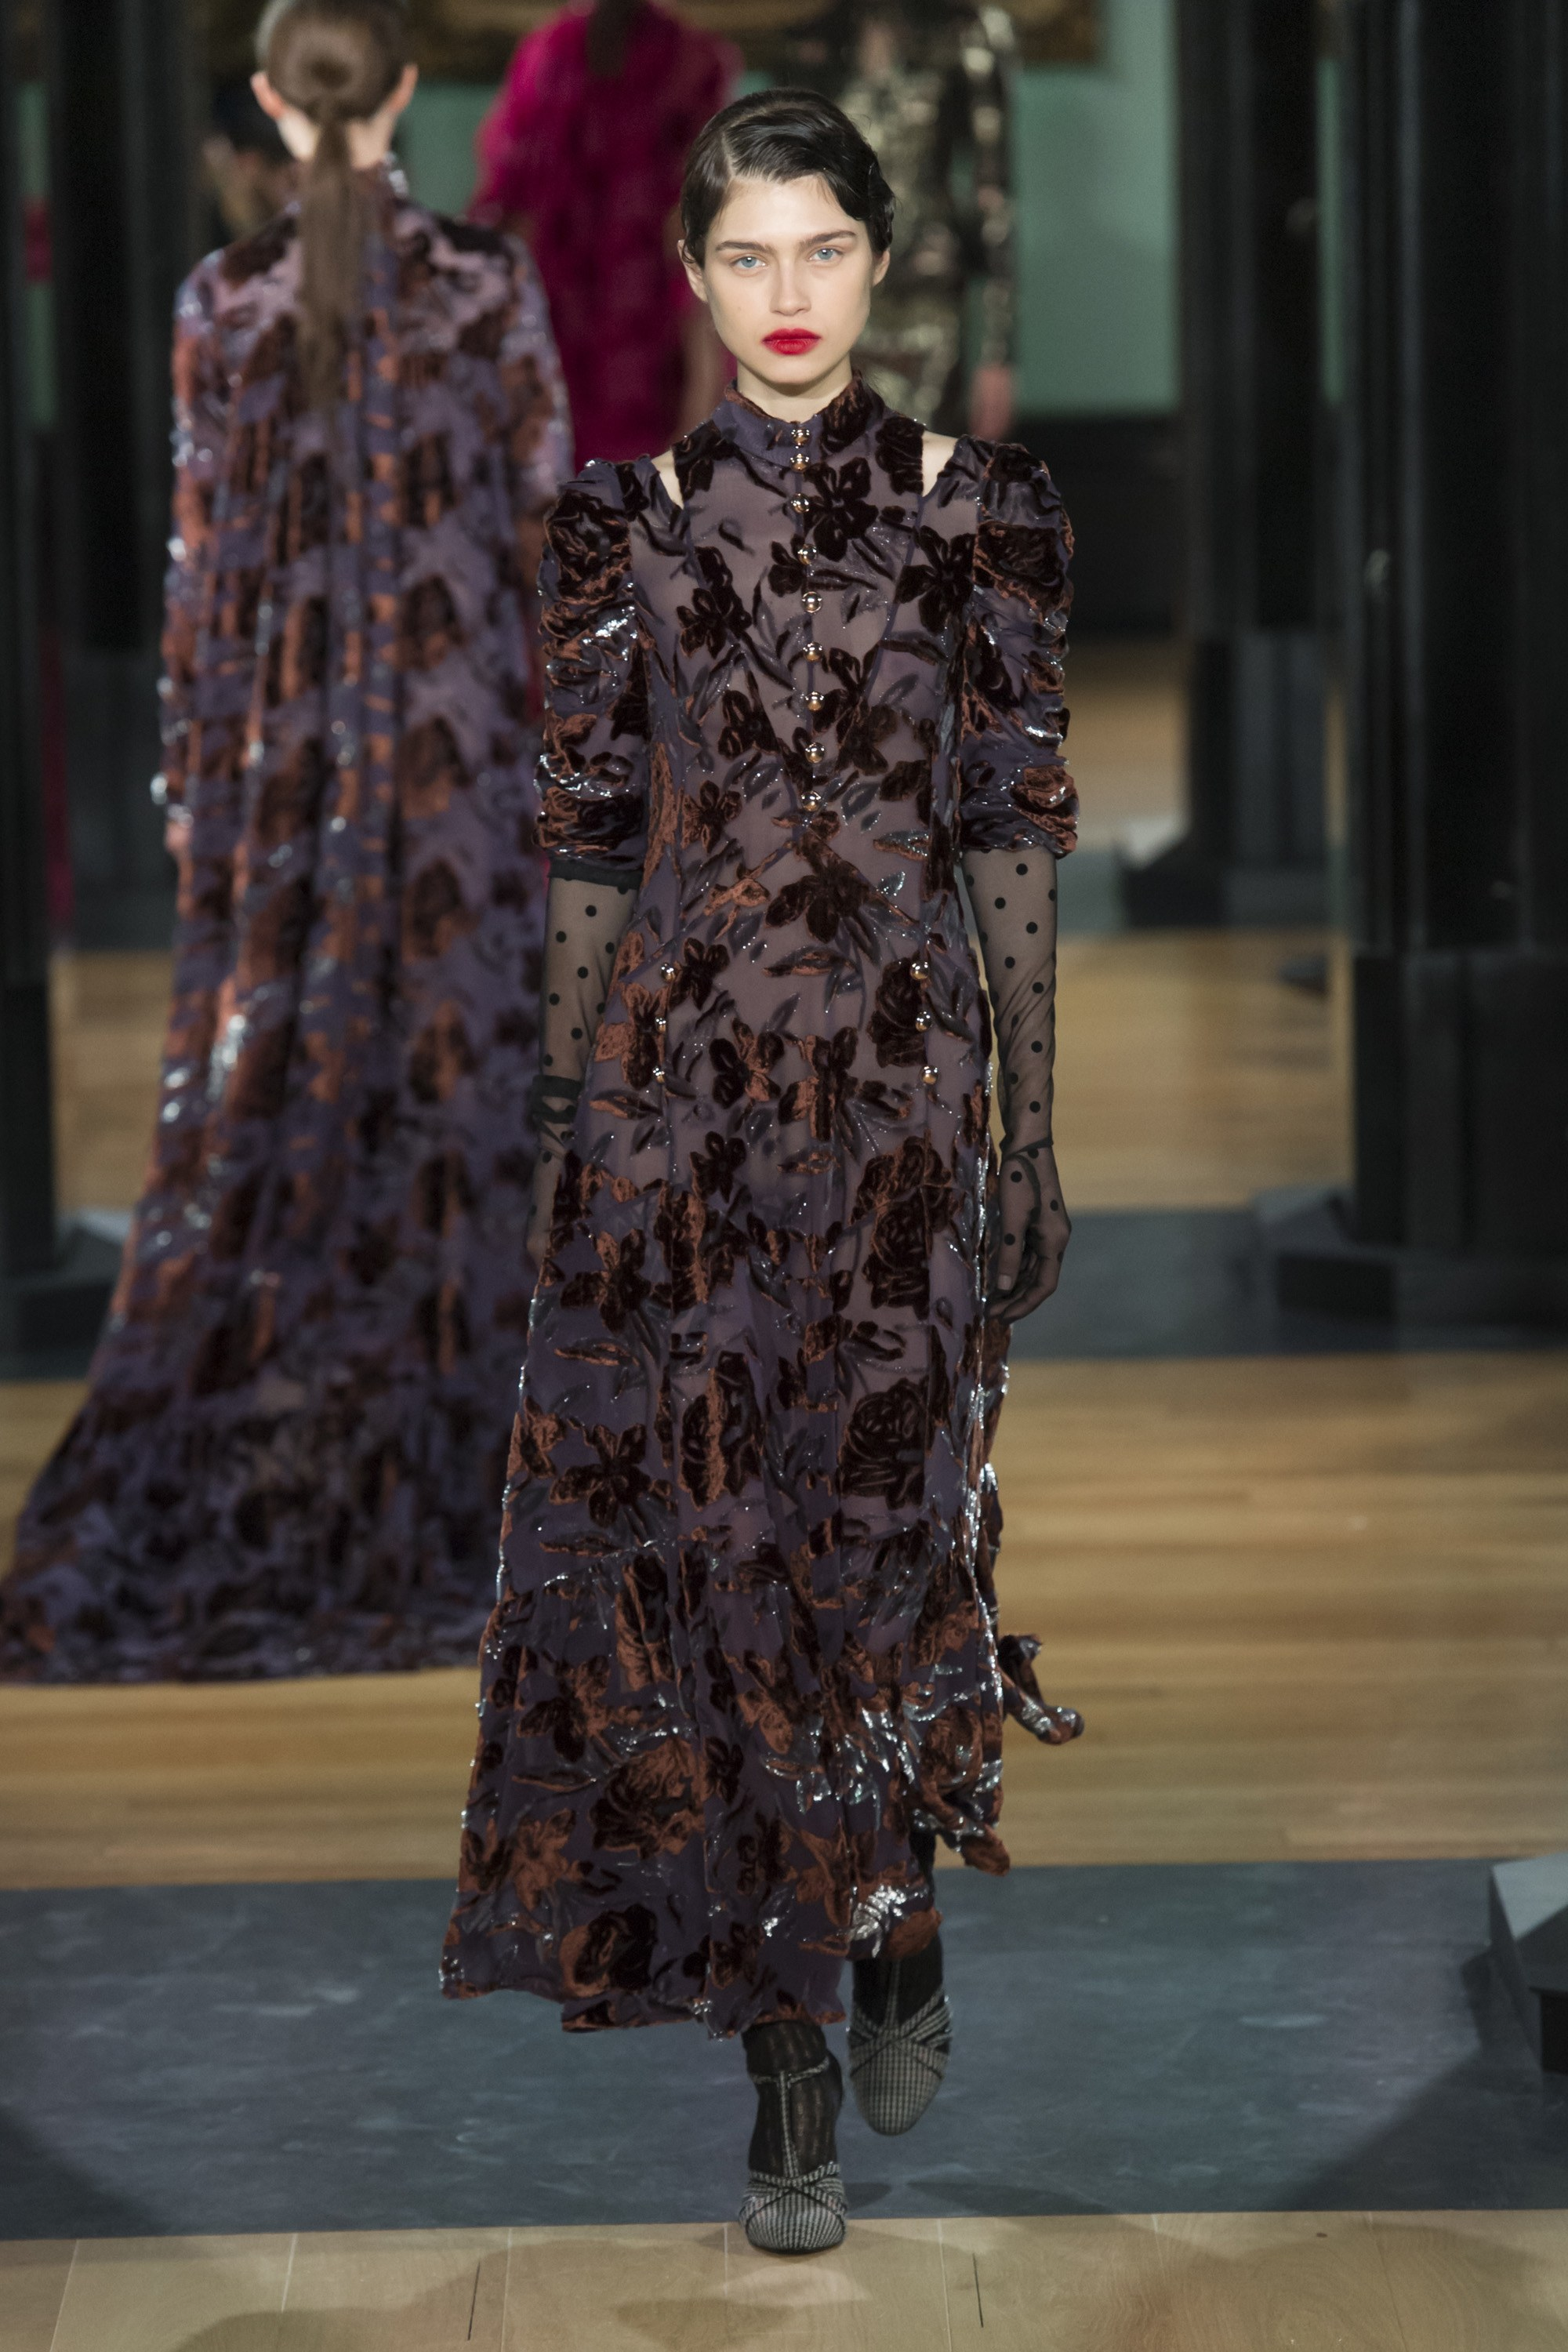 erdem-london-fashion-week-fall-2018-rtw-3.jpg